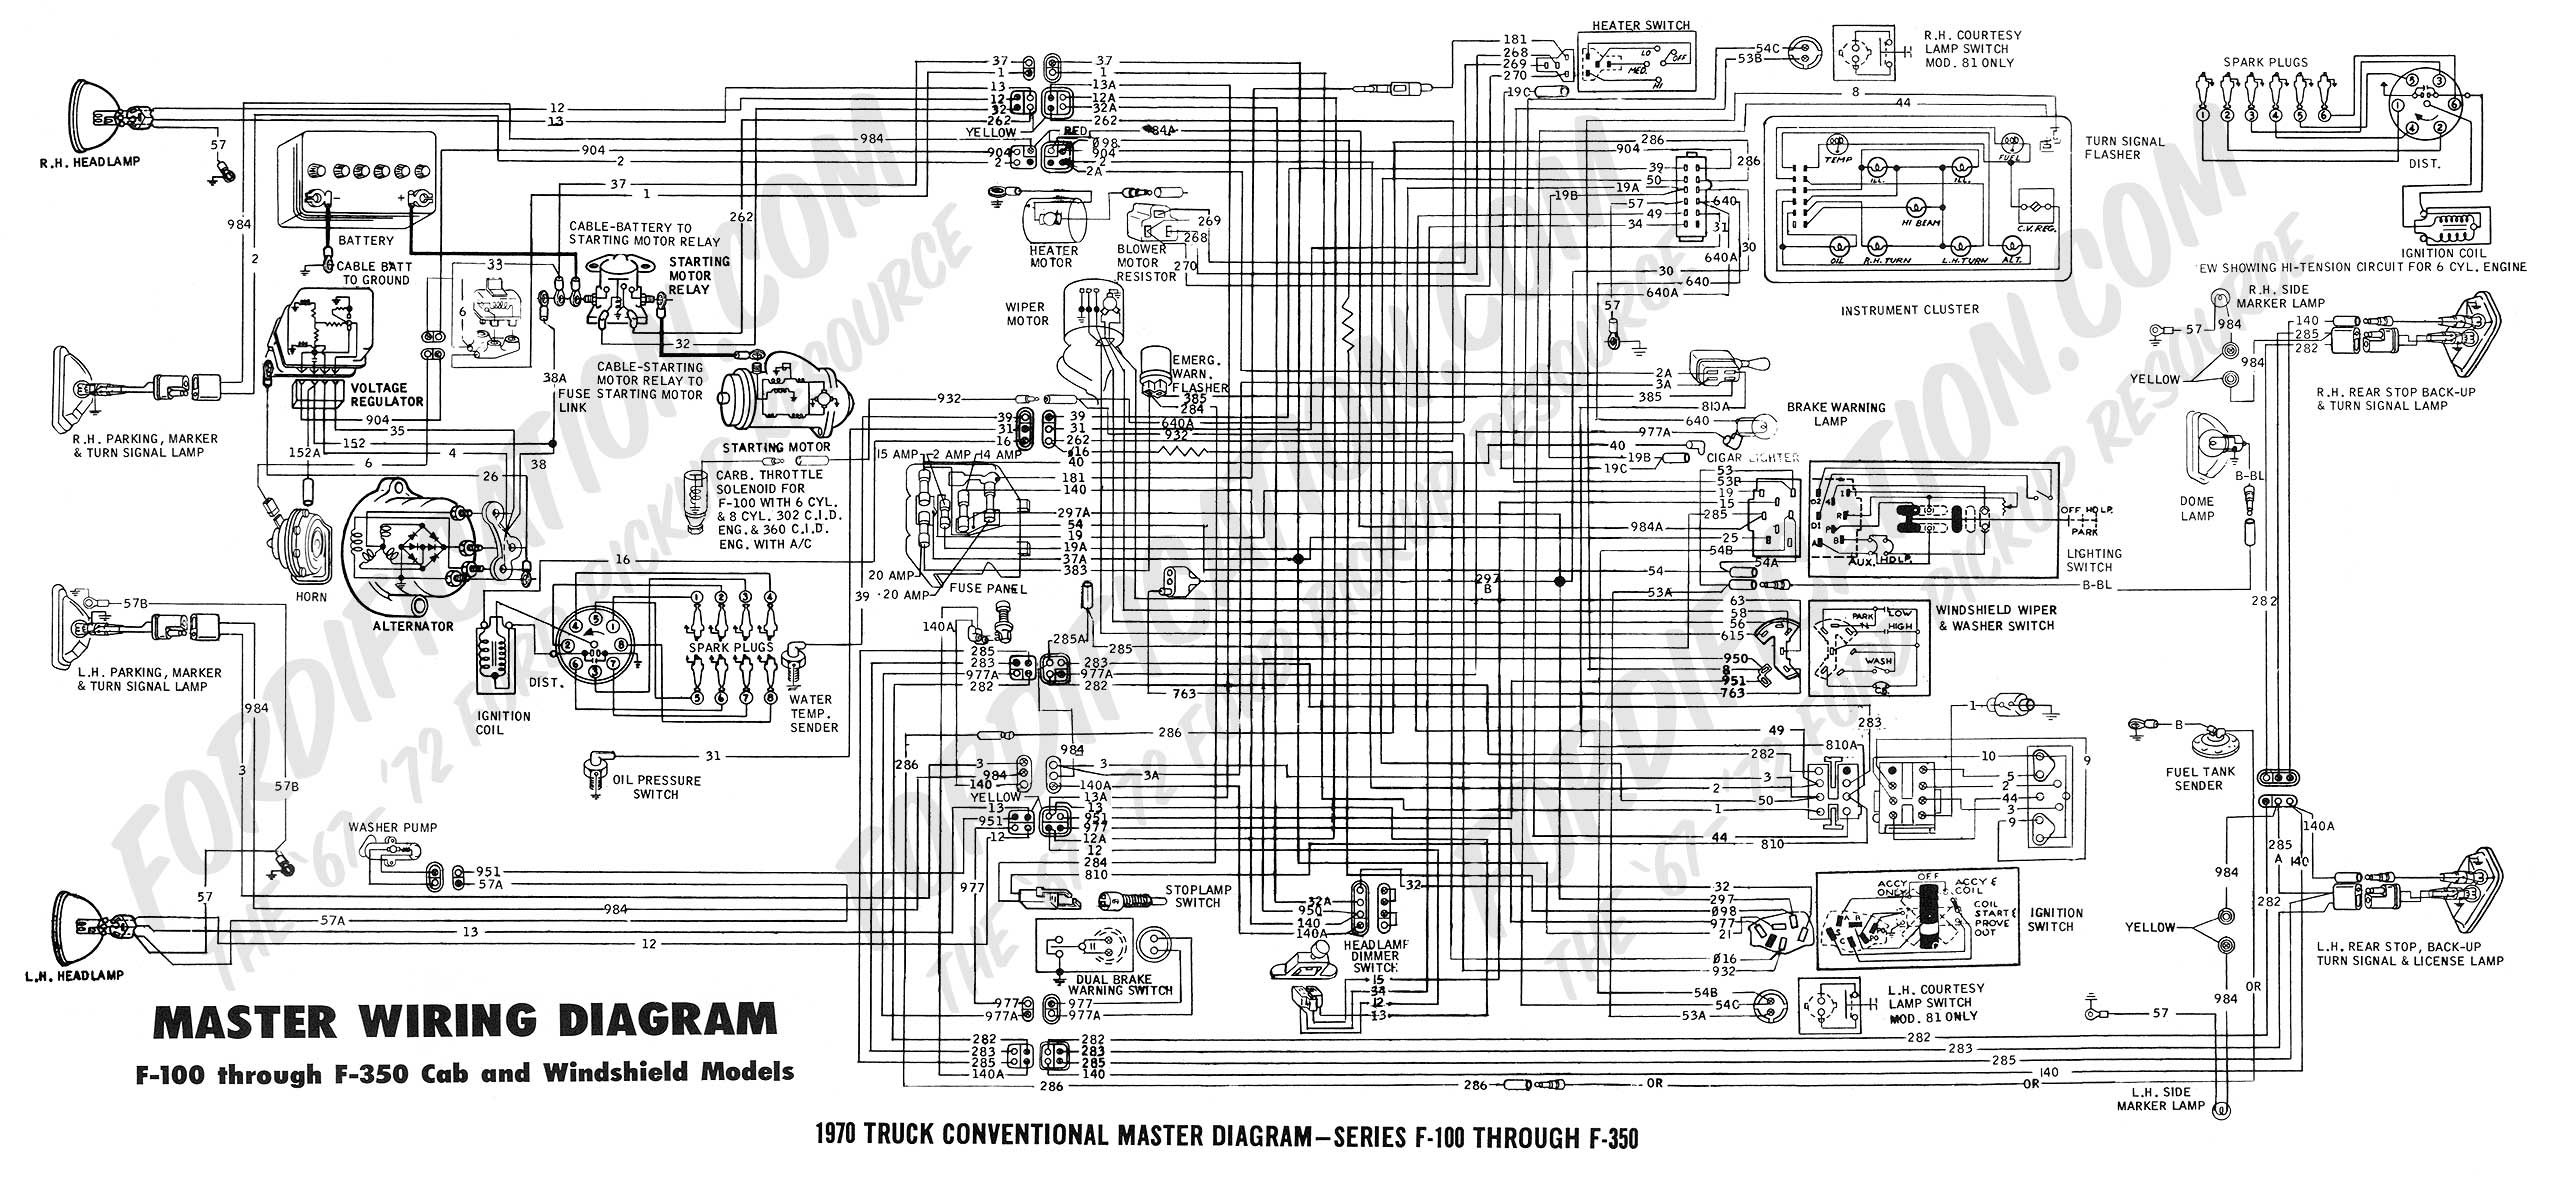 71 f250 wiring diagram go wiring diagram ford truck wiring harness 71 ford truck wiring diagram #6